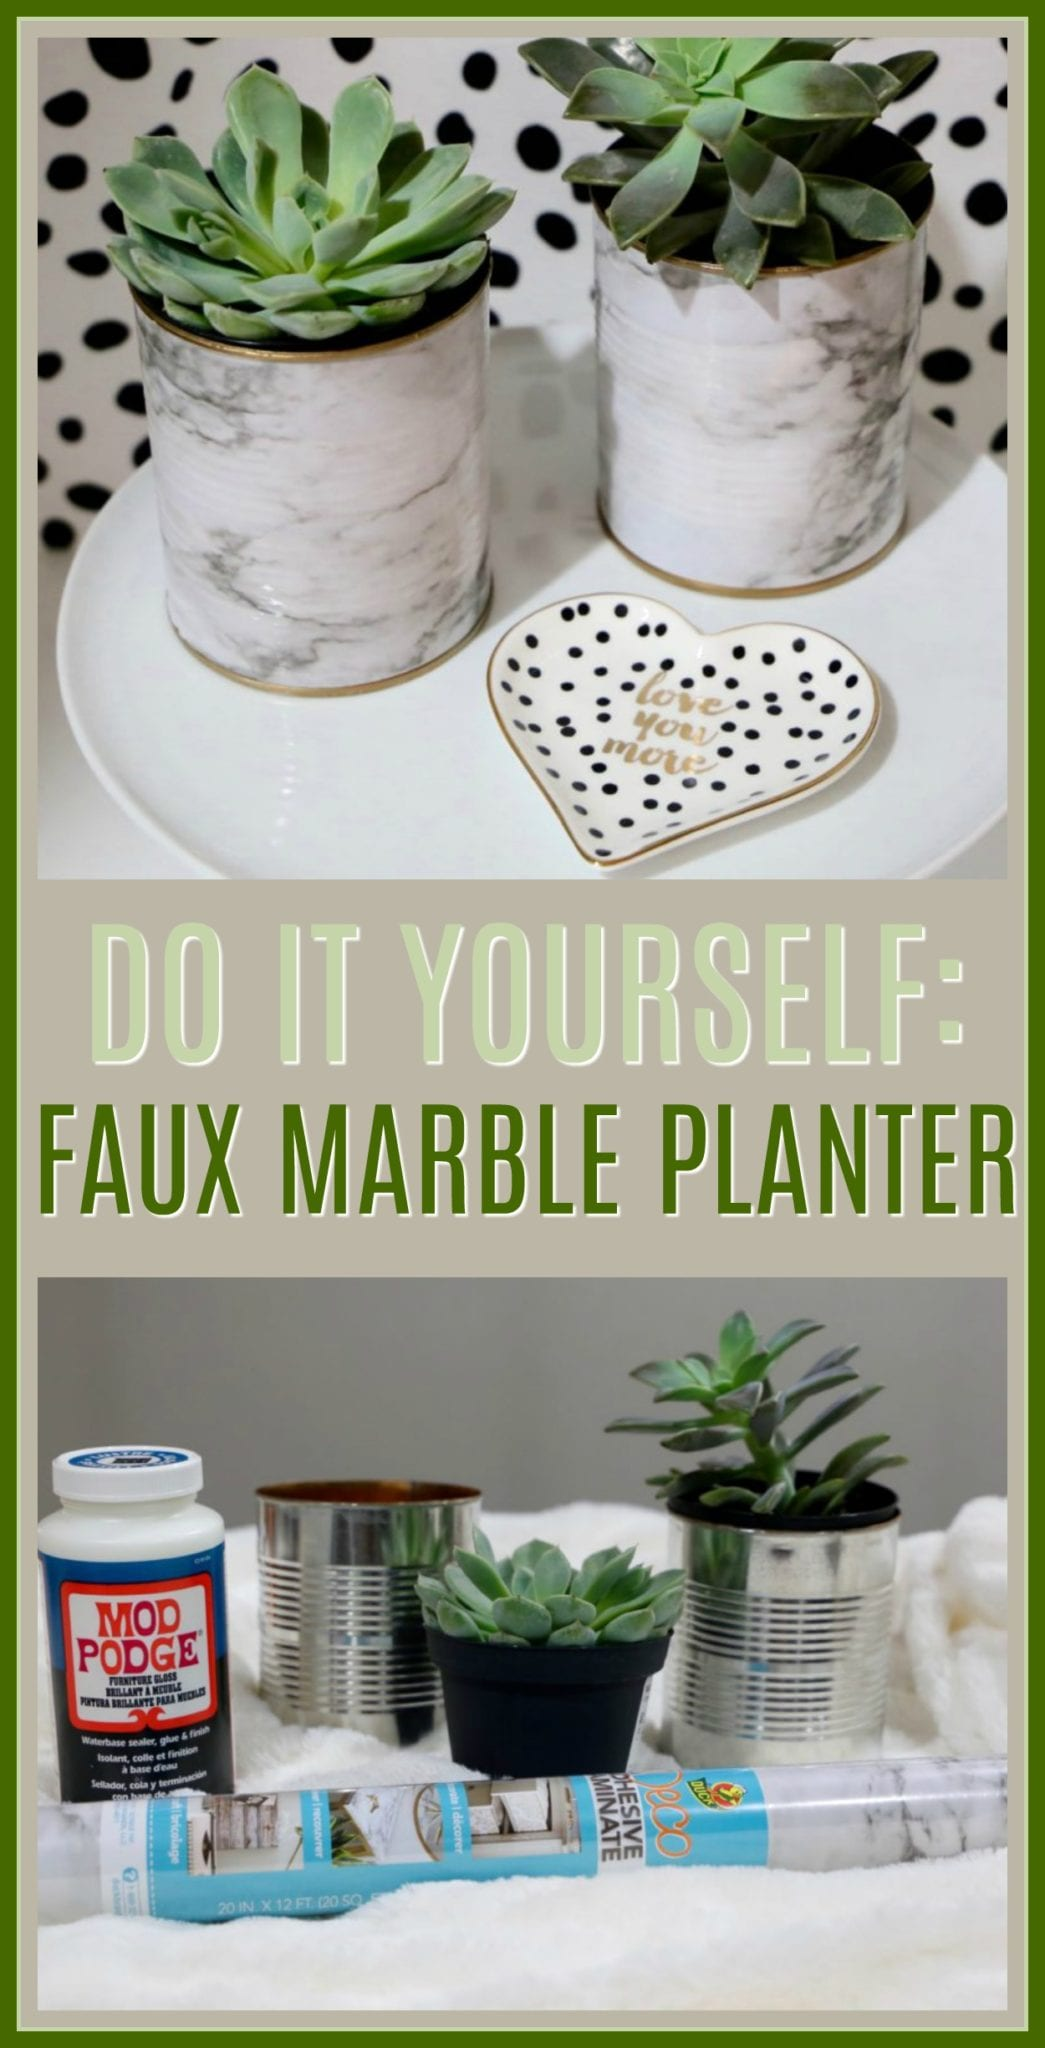 diy planters, crafts, faux marble planters, home decor, crafts